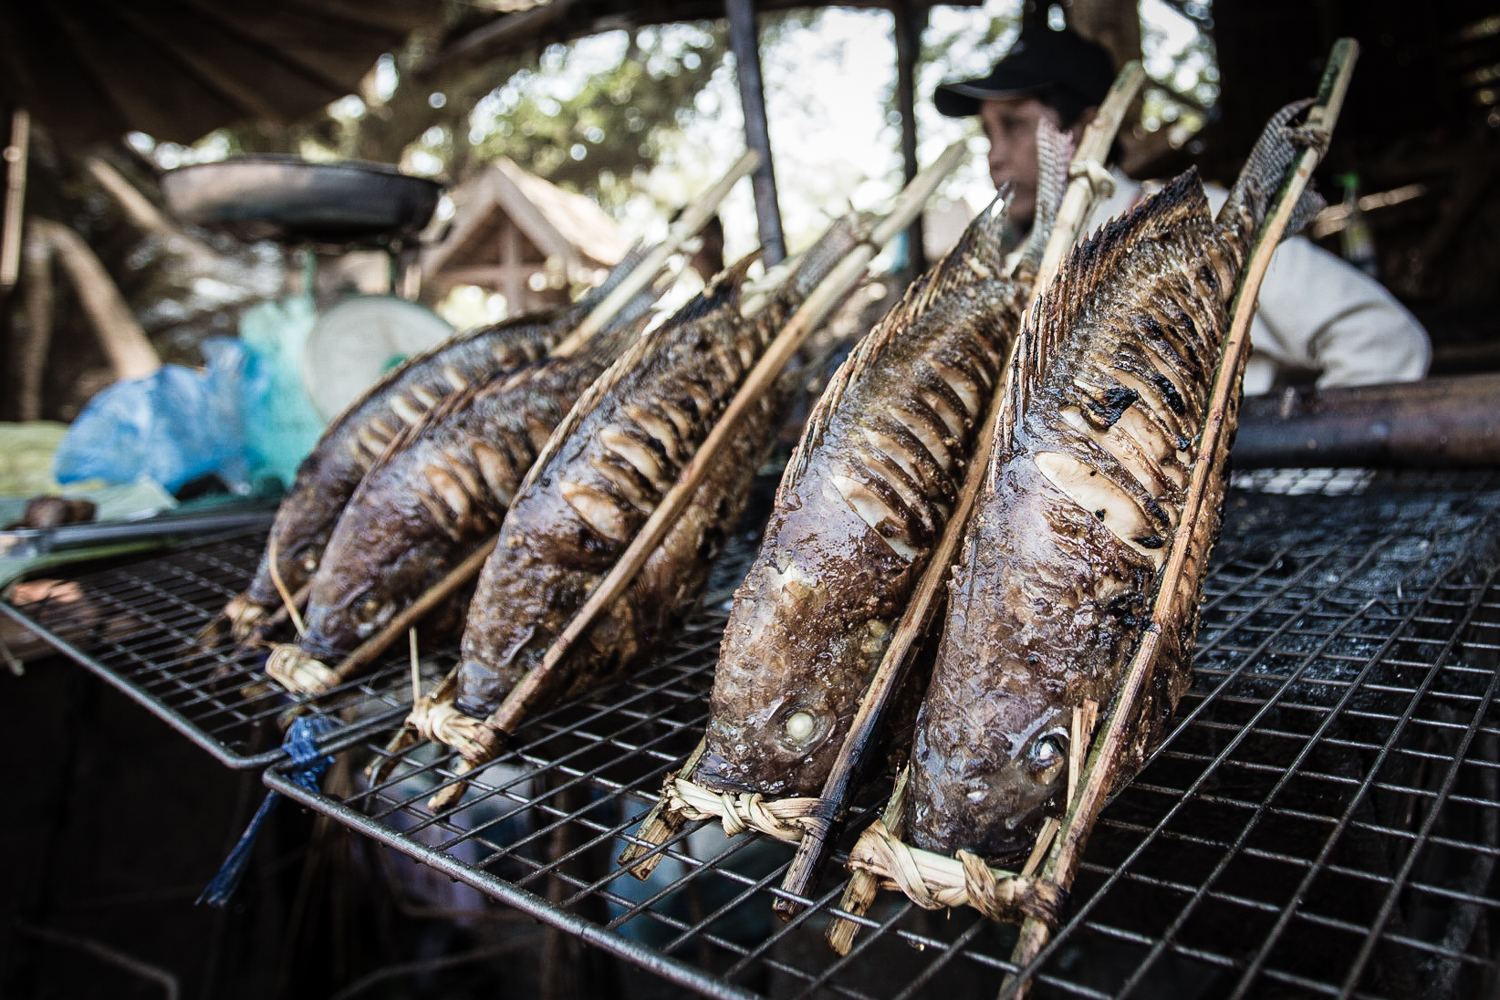 The catch of the day sold as street food in Laos.